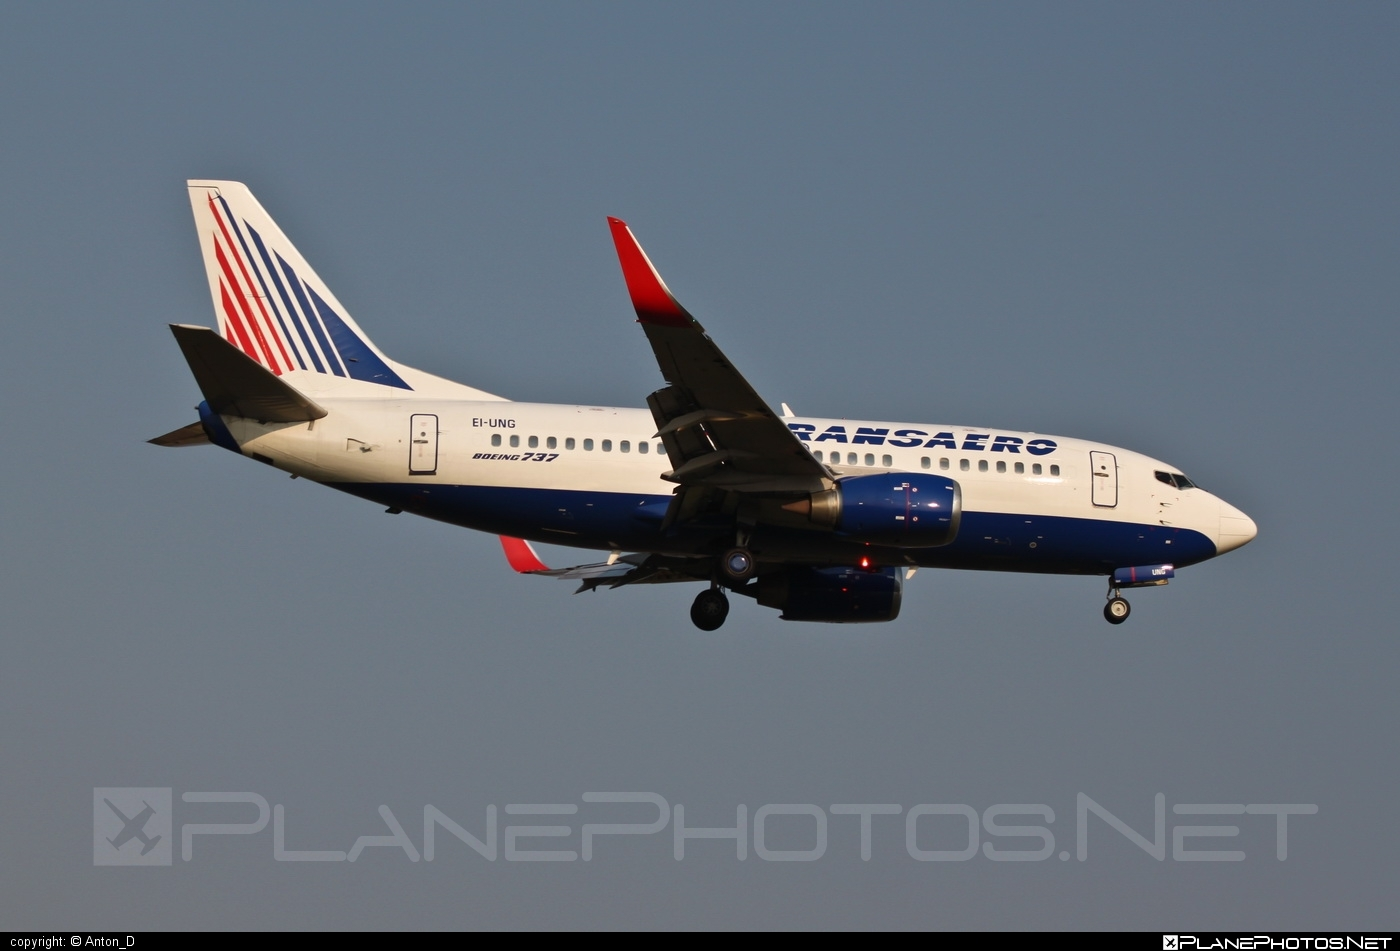 Boeing 737-500 - EI-UNG operated by Transaero Airlines #b737 #boeing #boeing737